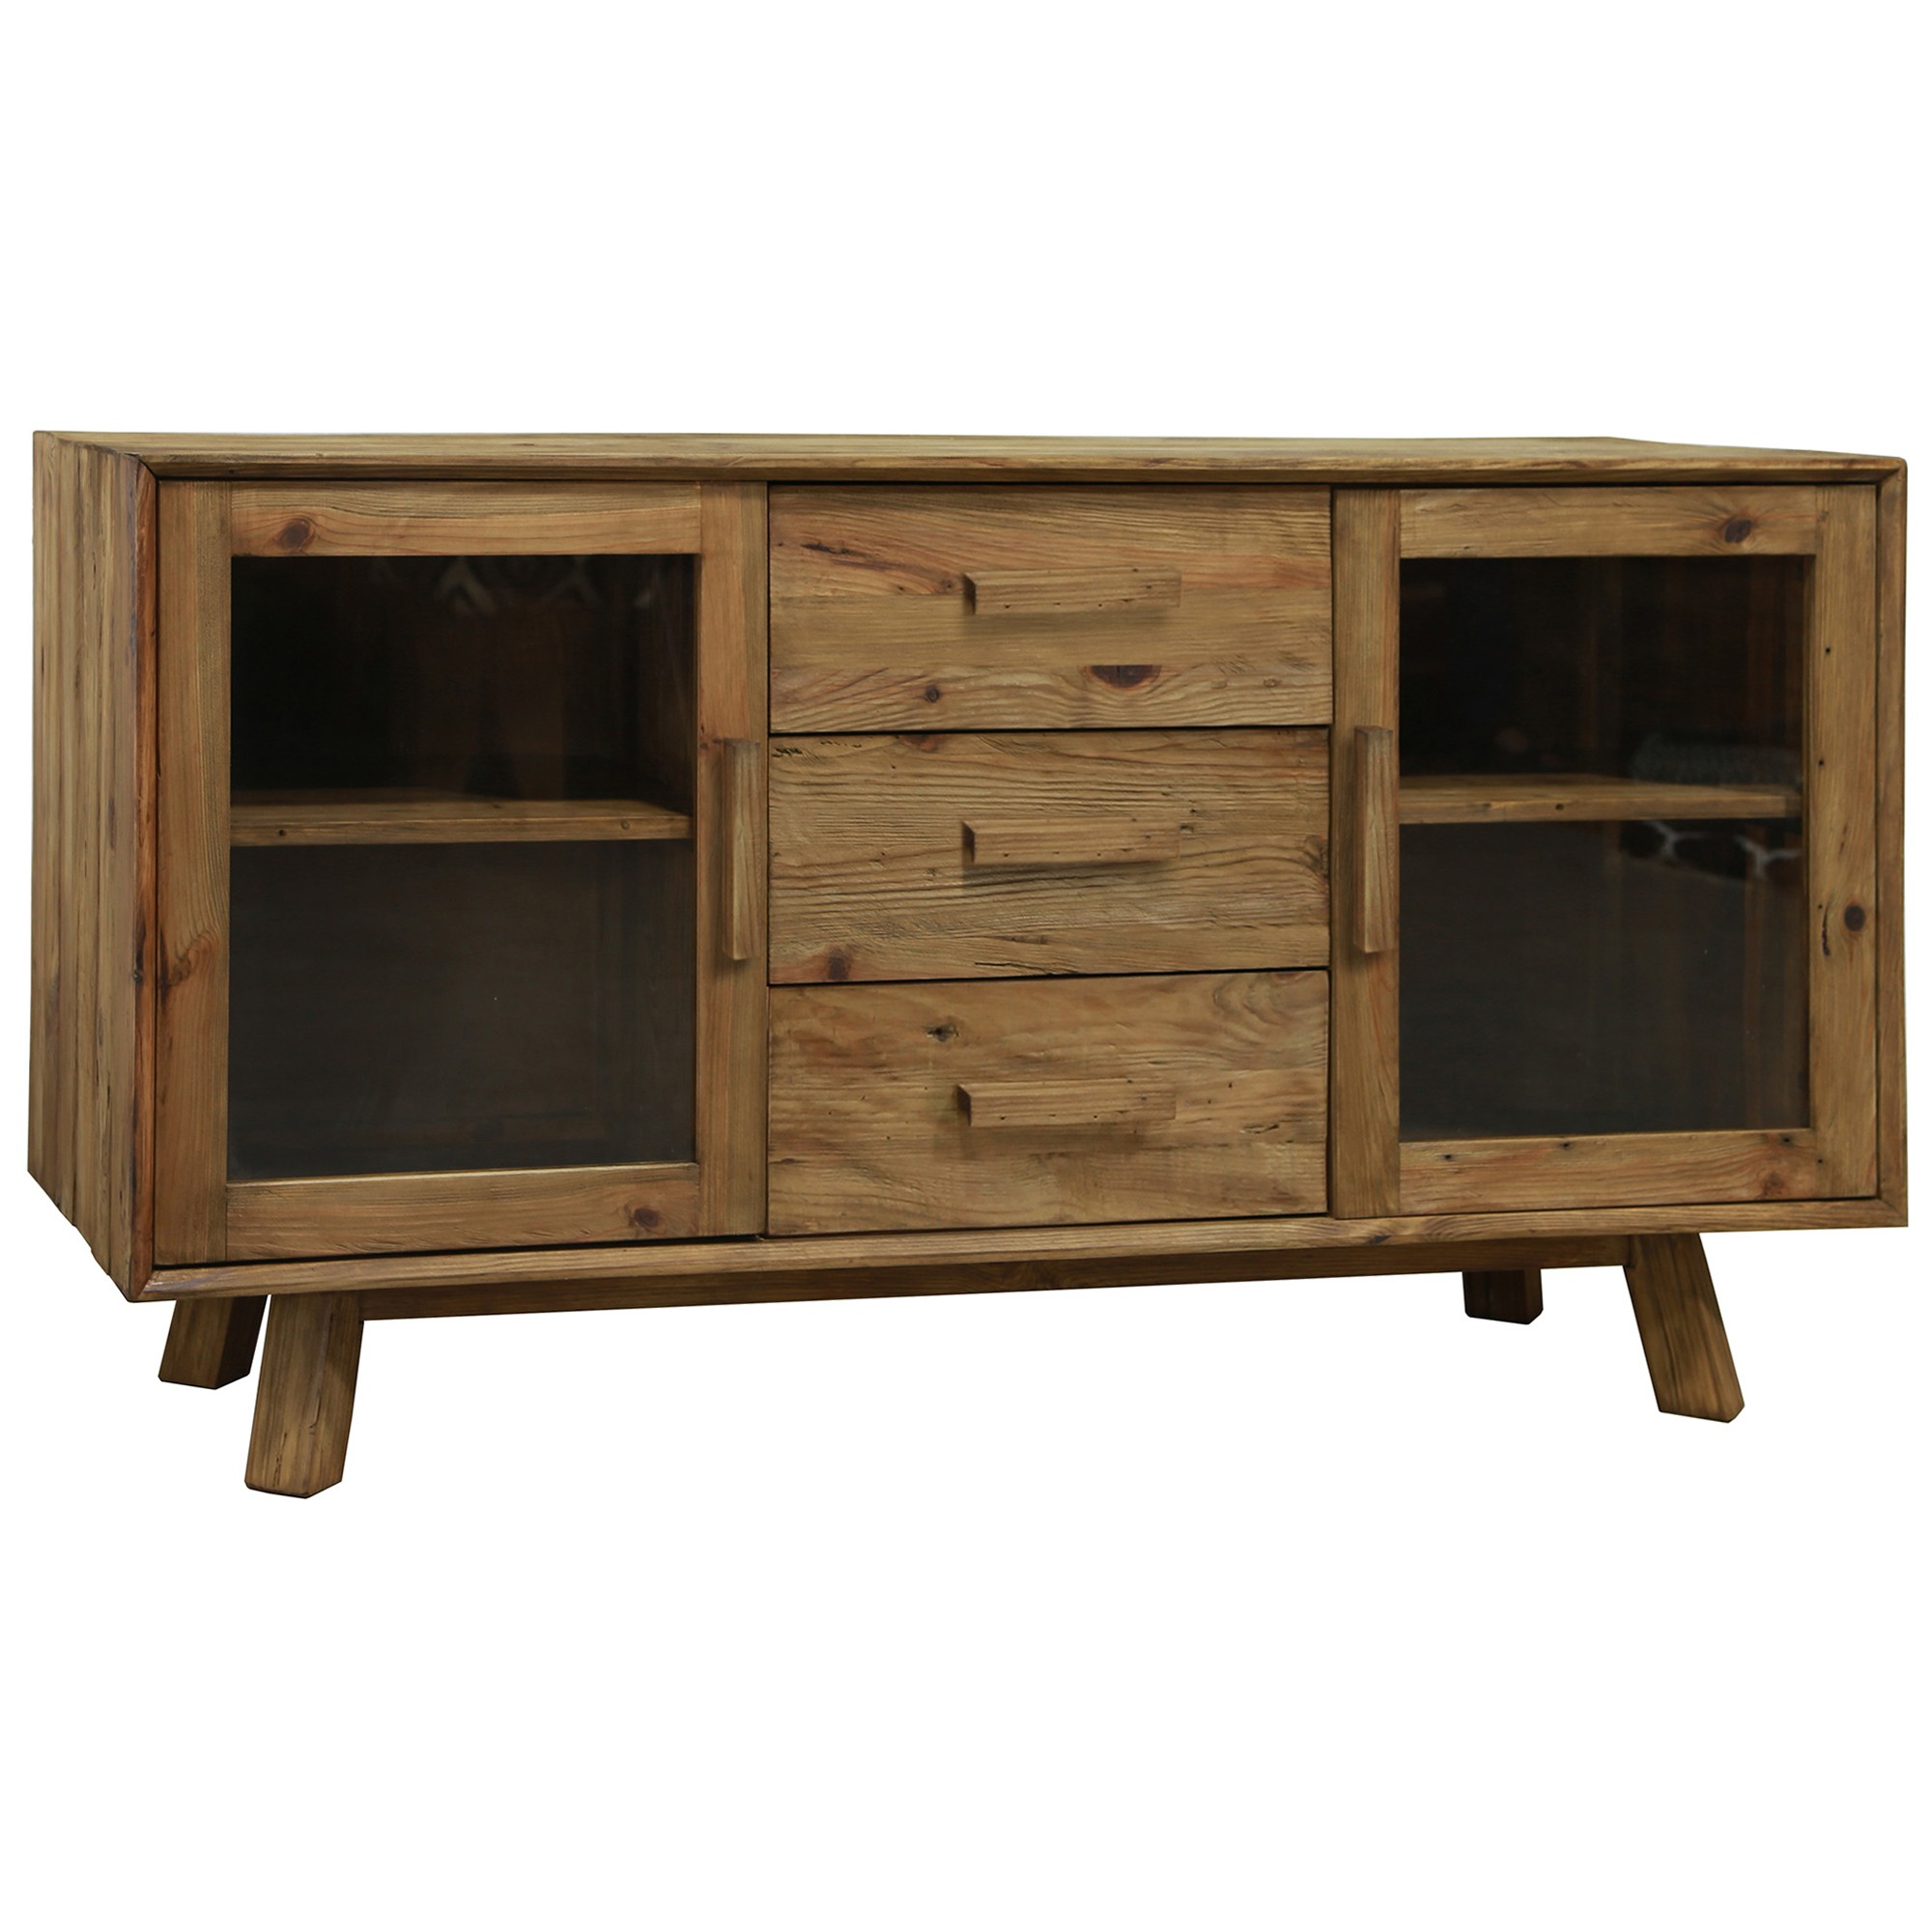 Mandalay Recycled Pine Timber 2 Door 3 Drawer Buffet Table, 162cm